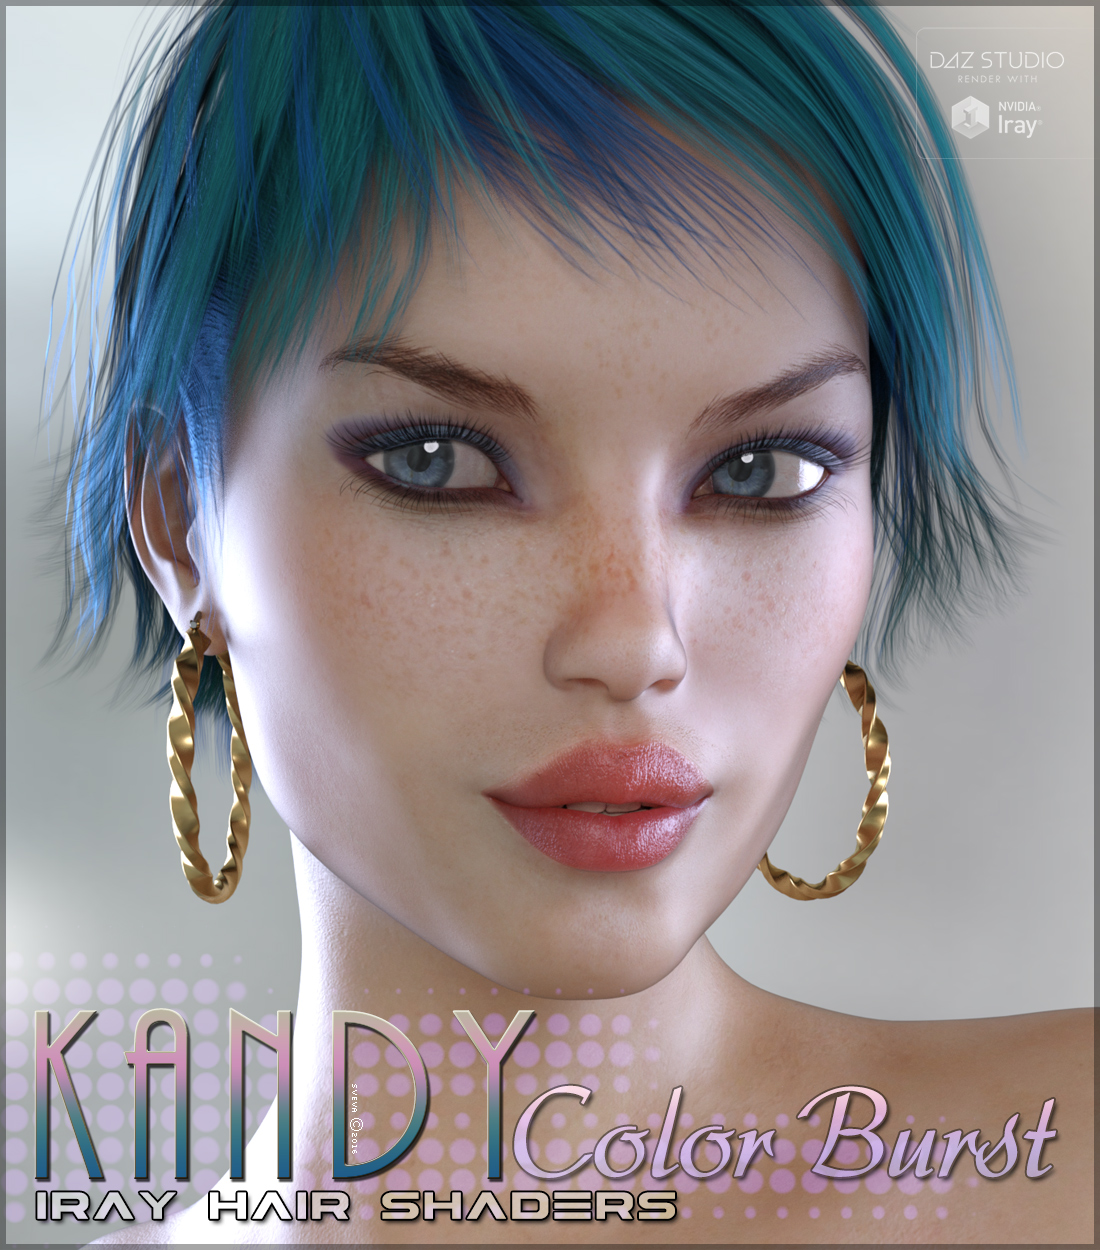 SV's Kandy Iray Color Burst Hair Shaders